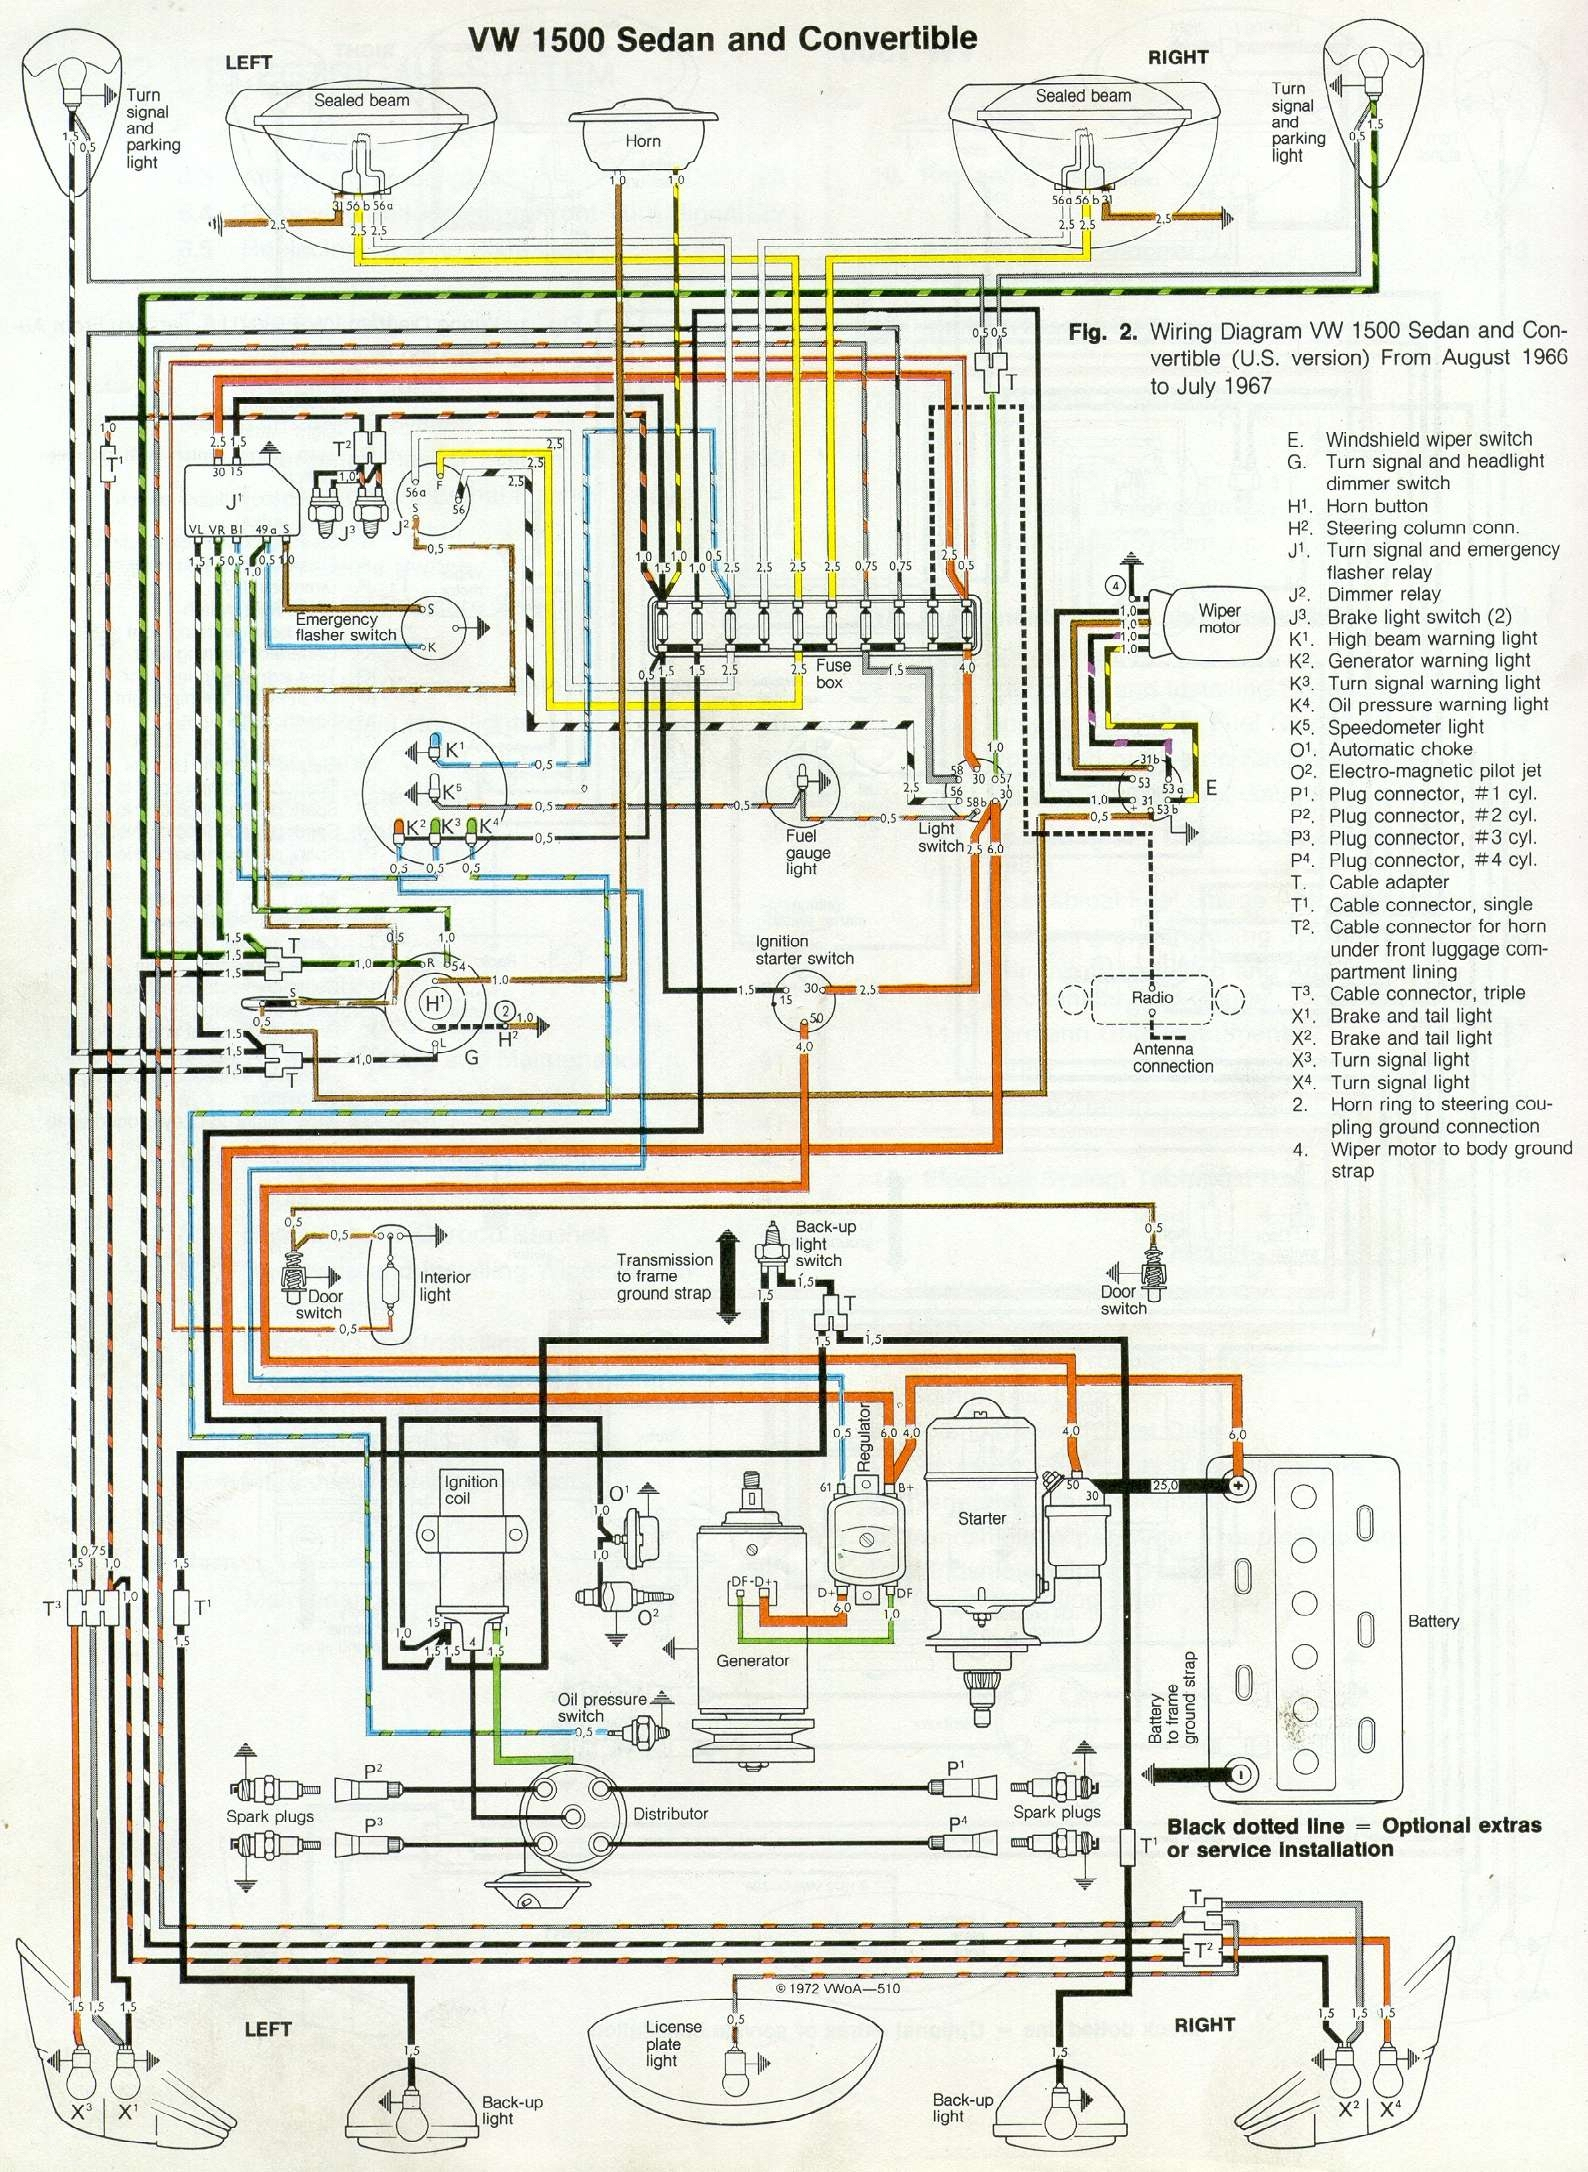 66 And '67 Vw Beetle Wiring Diagram 1967 Beetlerh1967beetle: 75 Vw Beetle Wiring Diagram At Gmaili.net